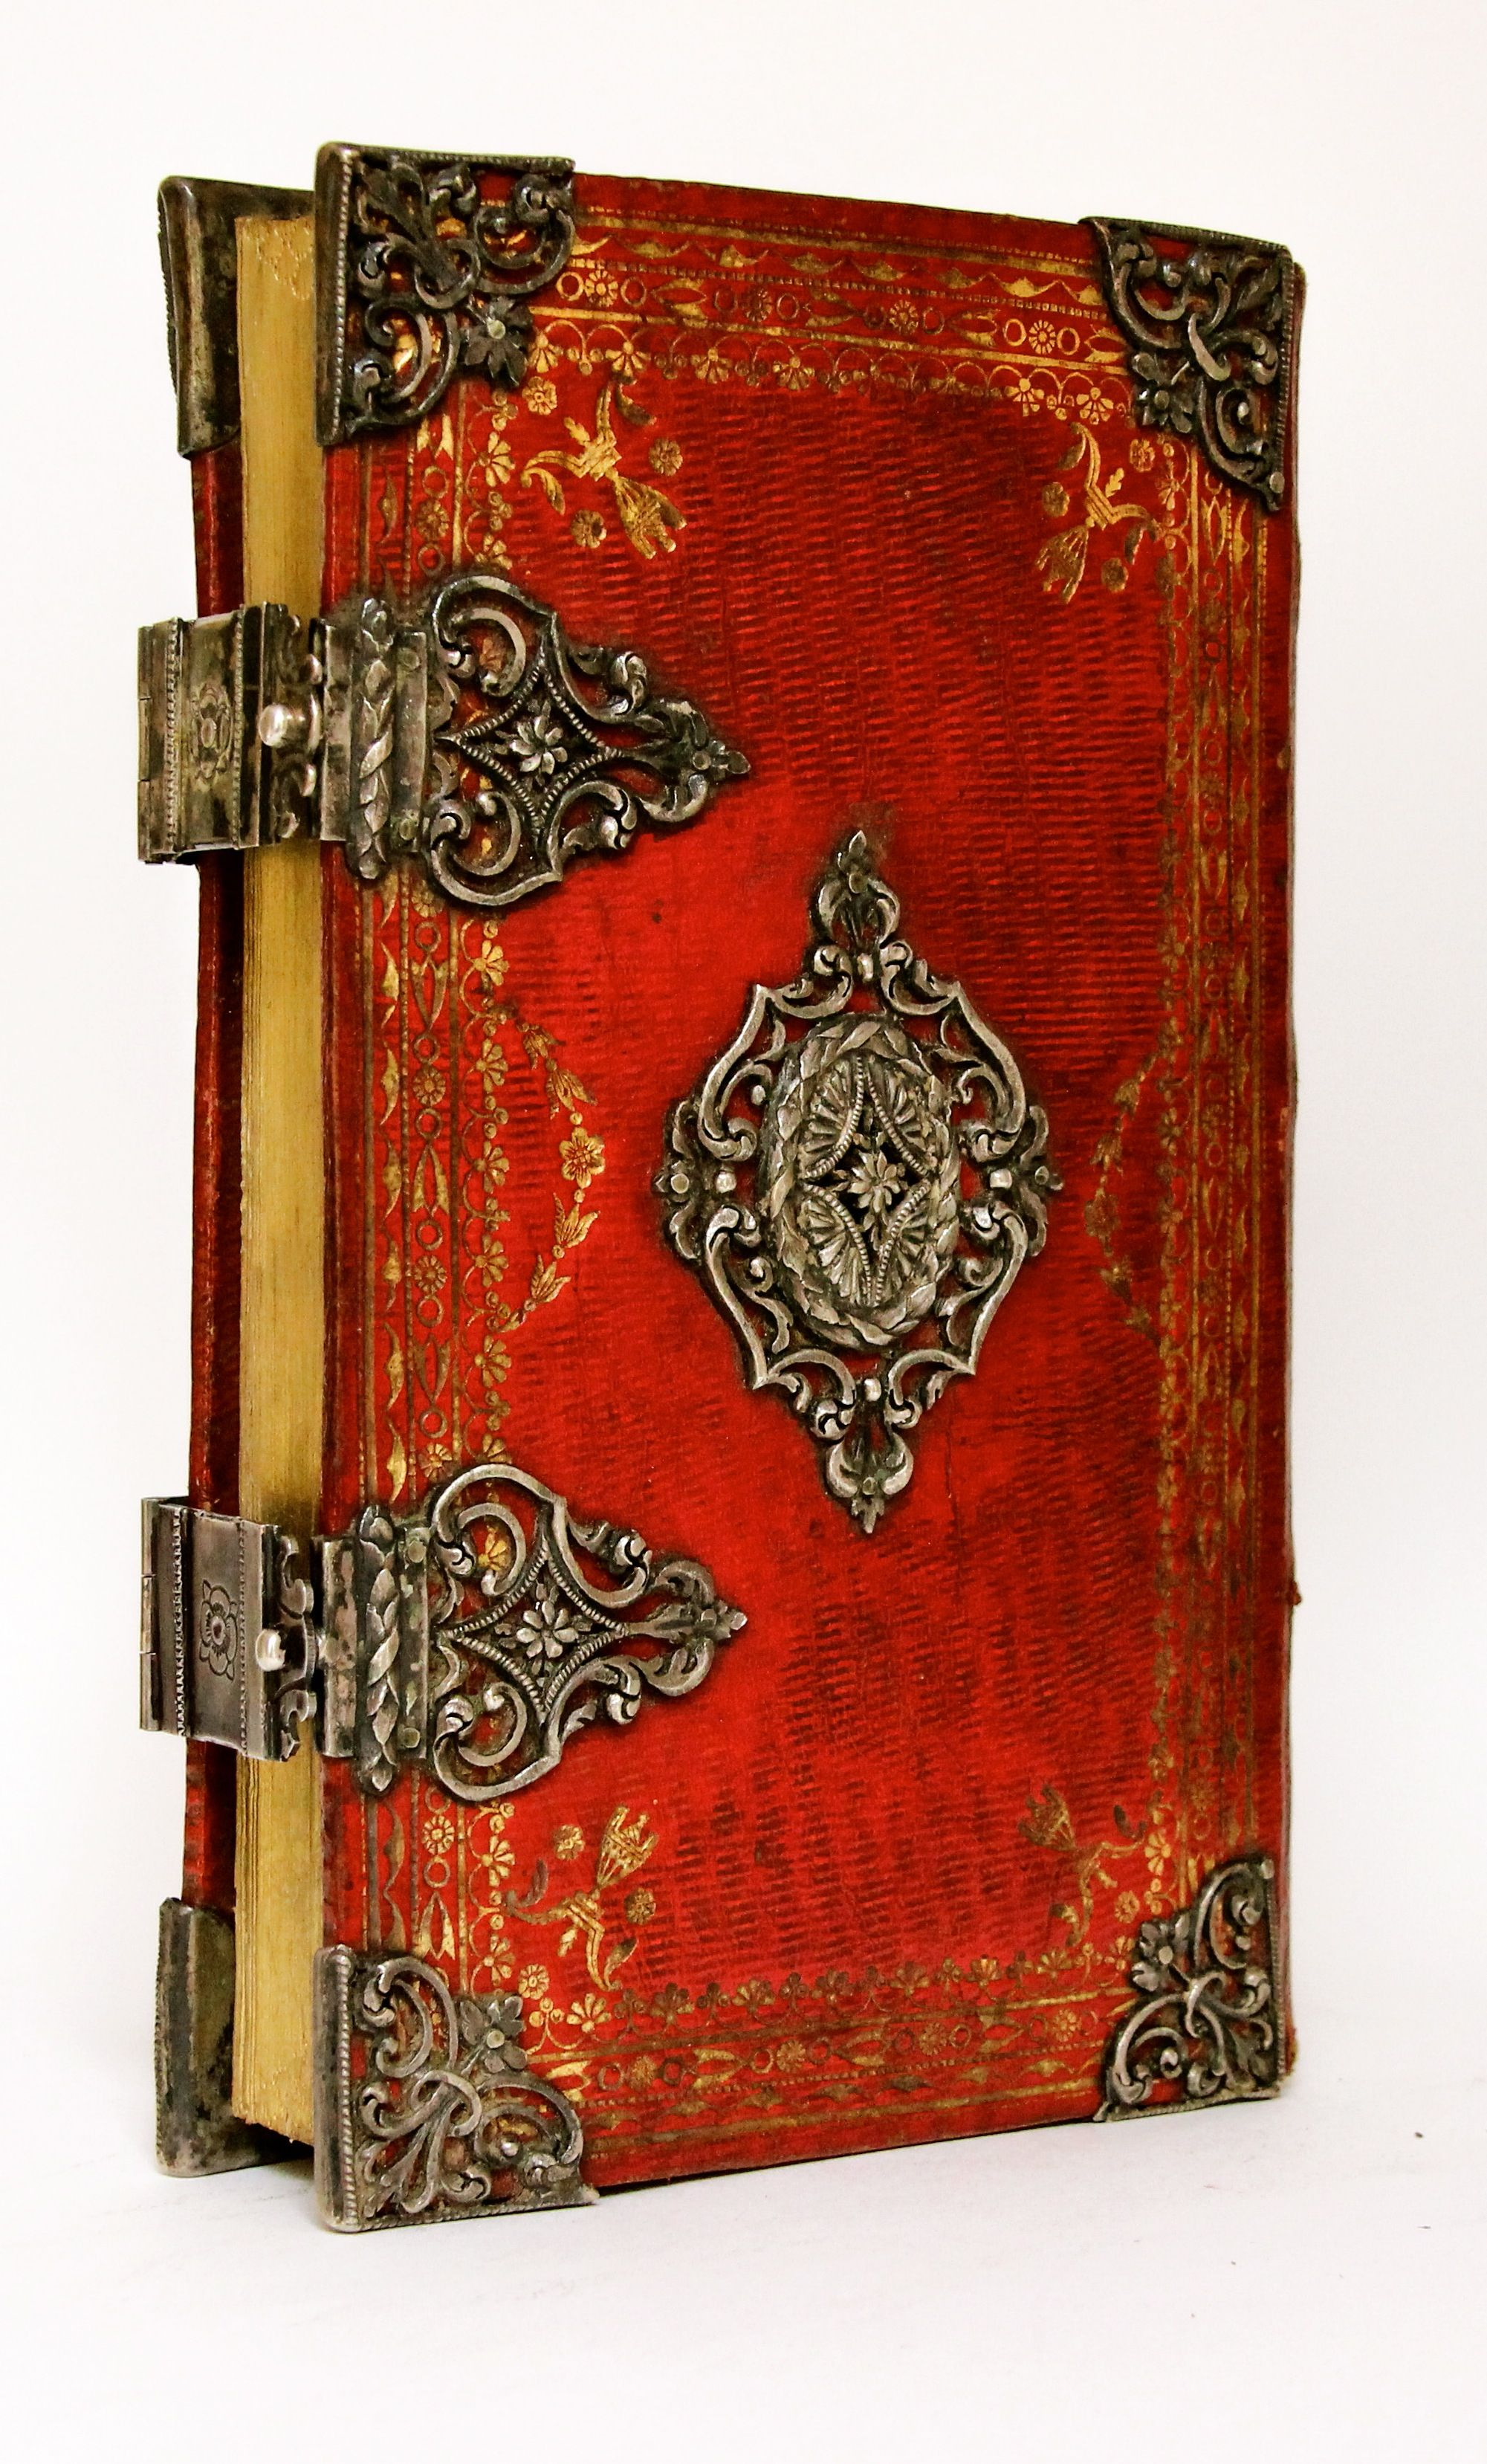 Beautiful Leather Binding Vintage Hand Made Blank Book Manuscript Writing